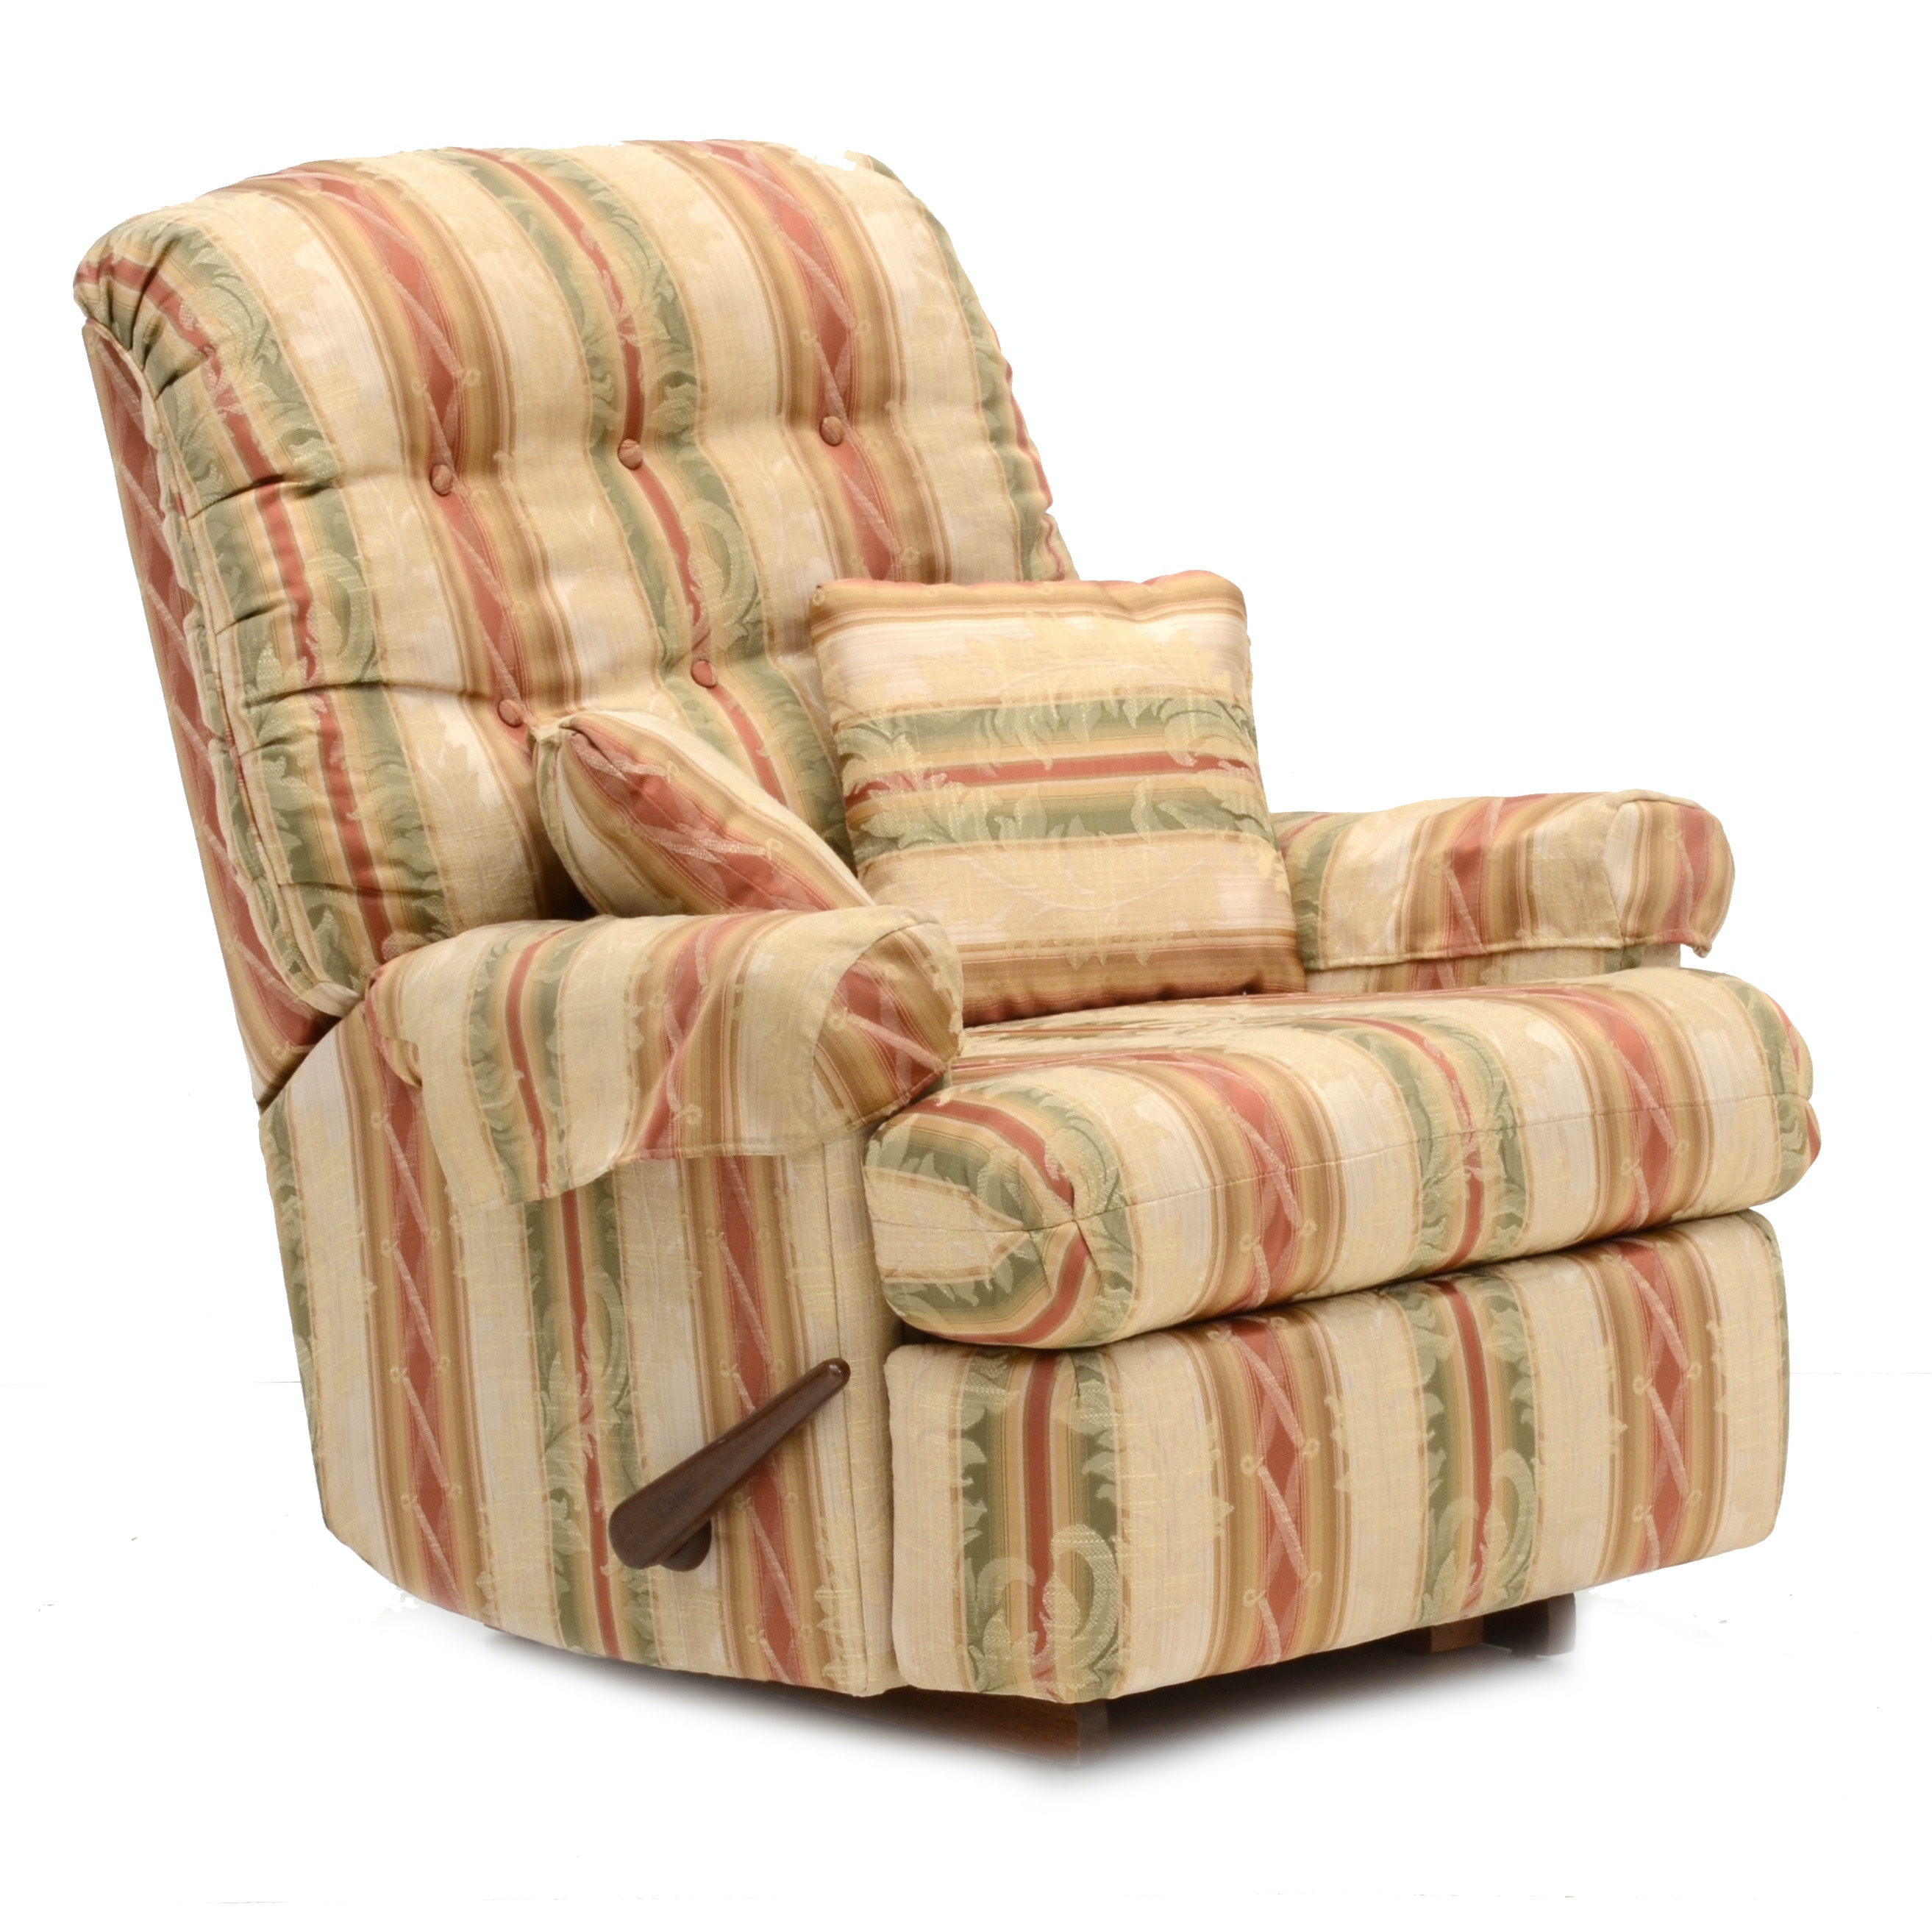 Rocking Recliner Lounge Chair